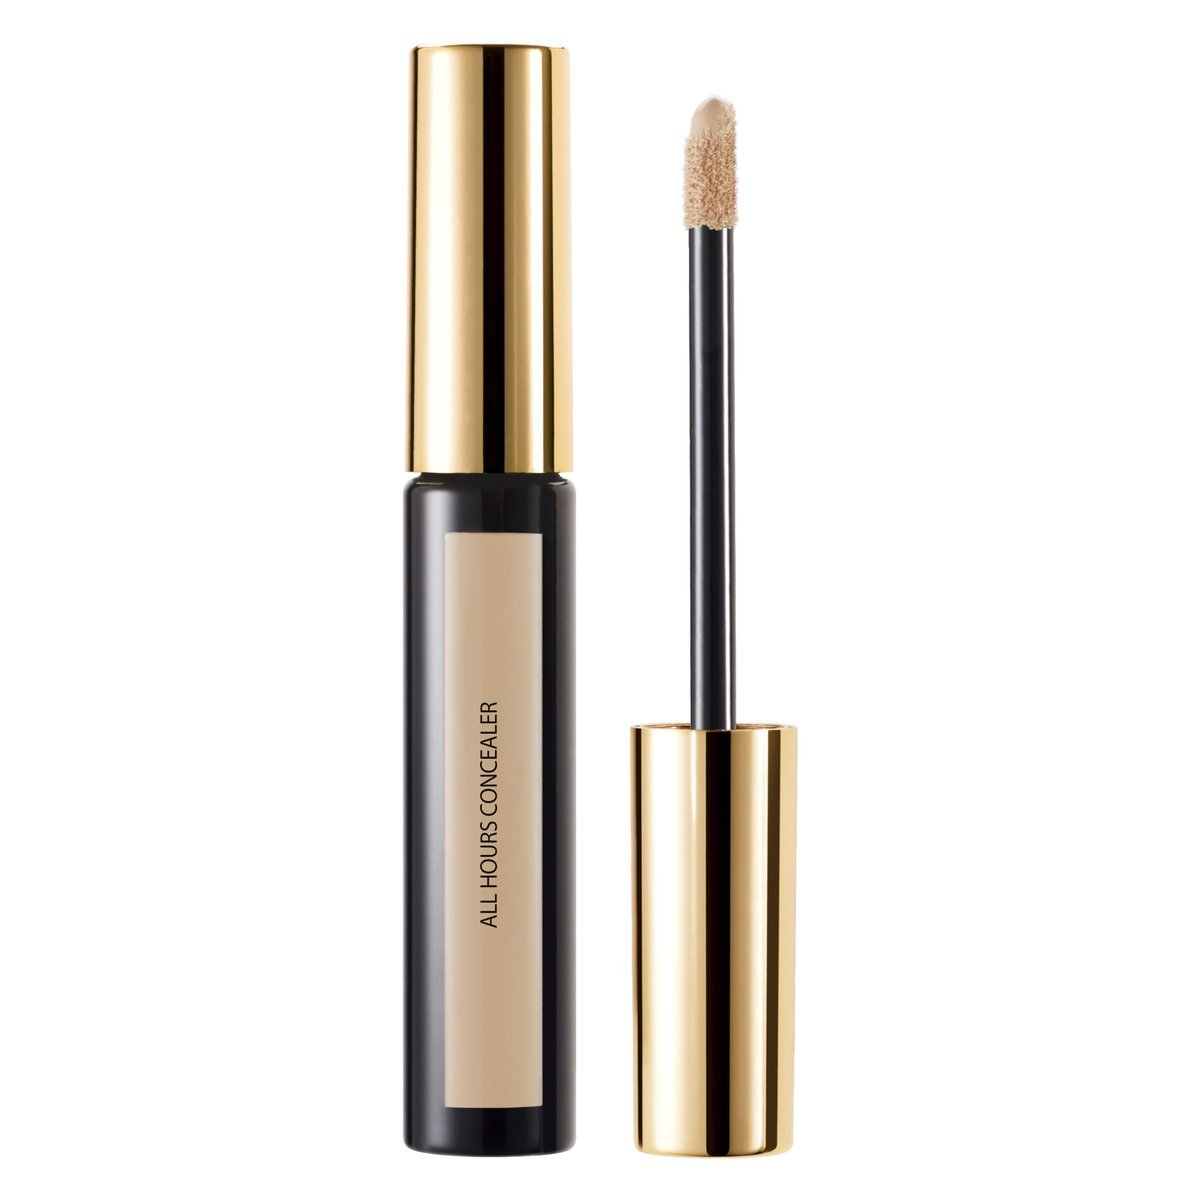 Yves Saint Laurent - Encre de Peau All Hours Concealer - Correcteur